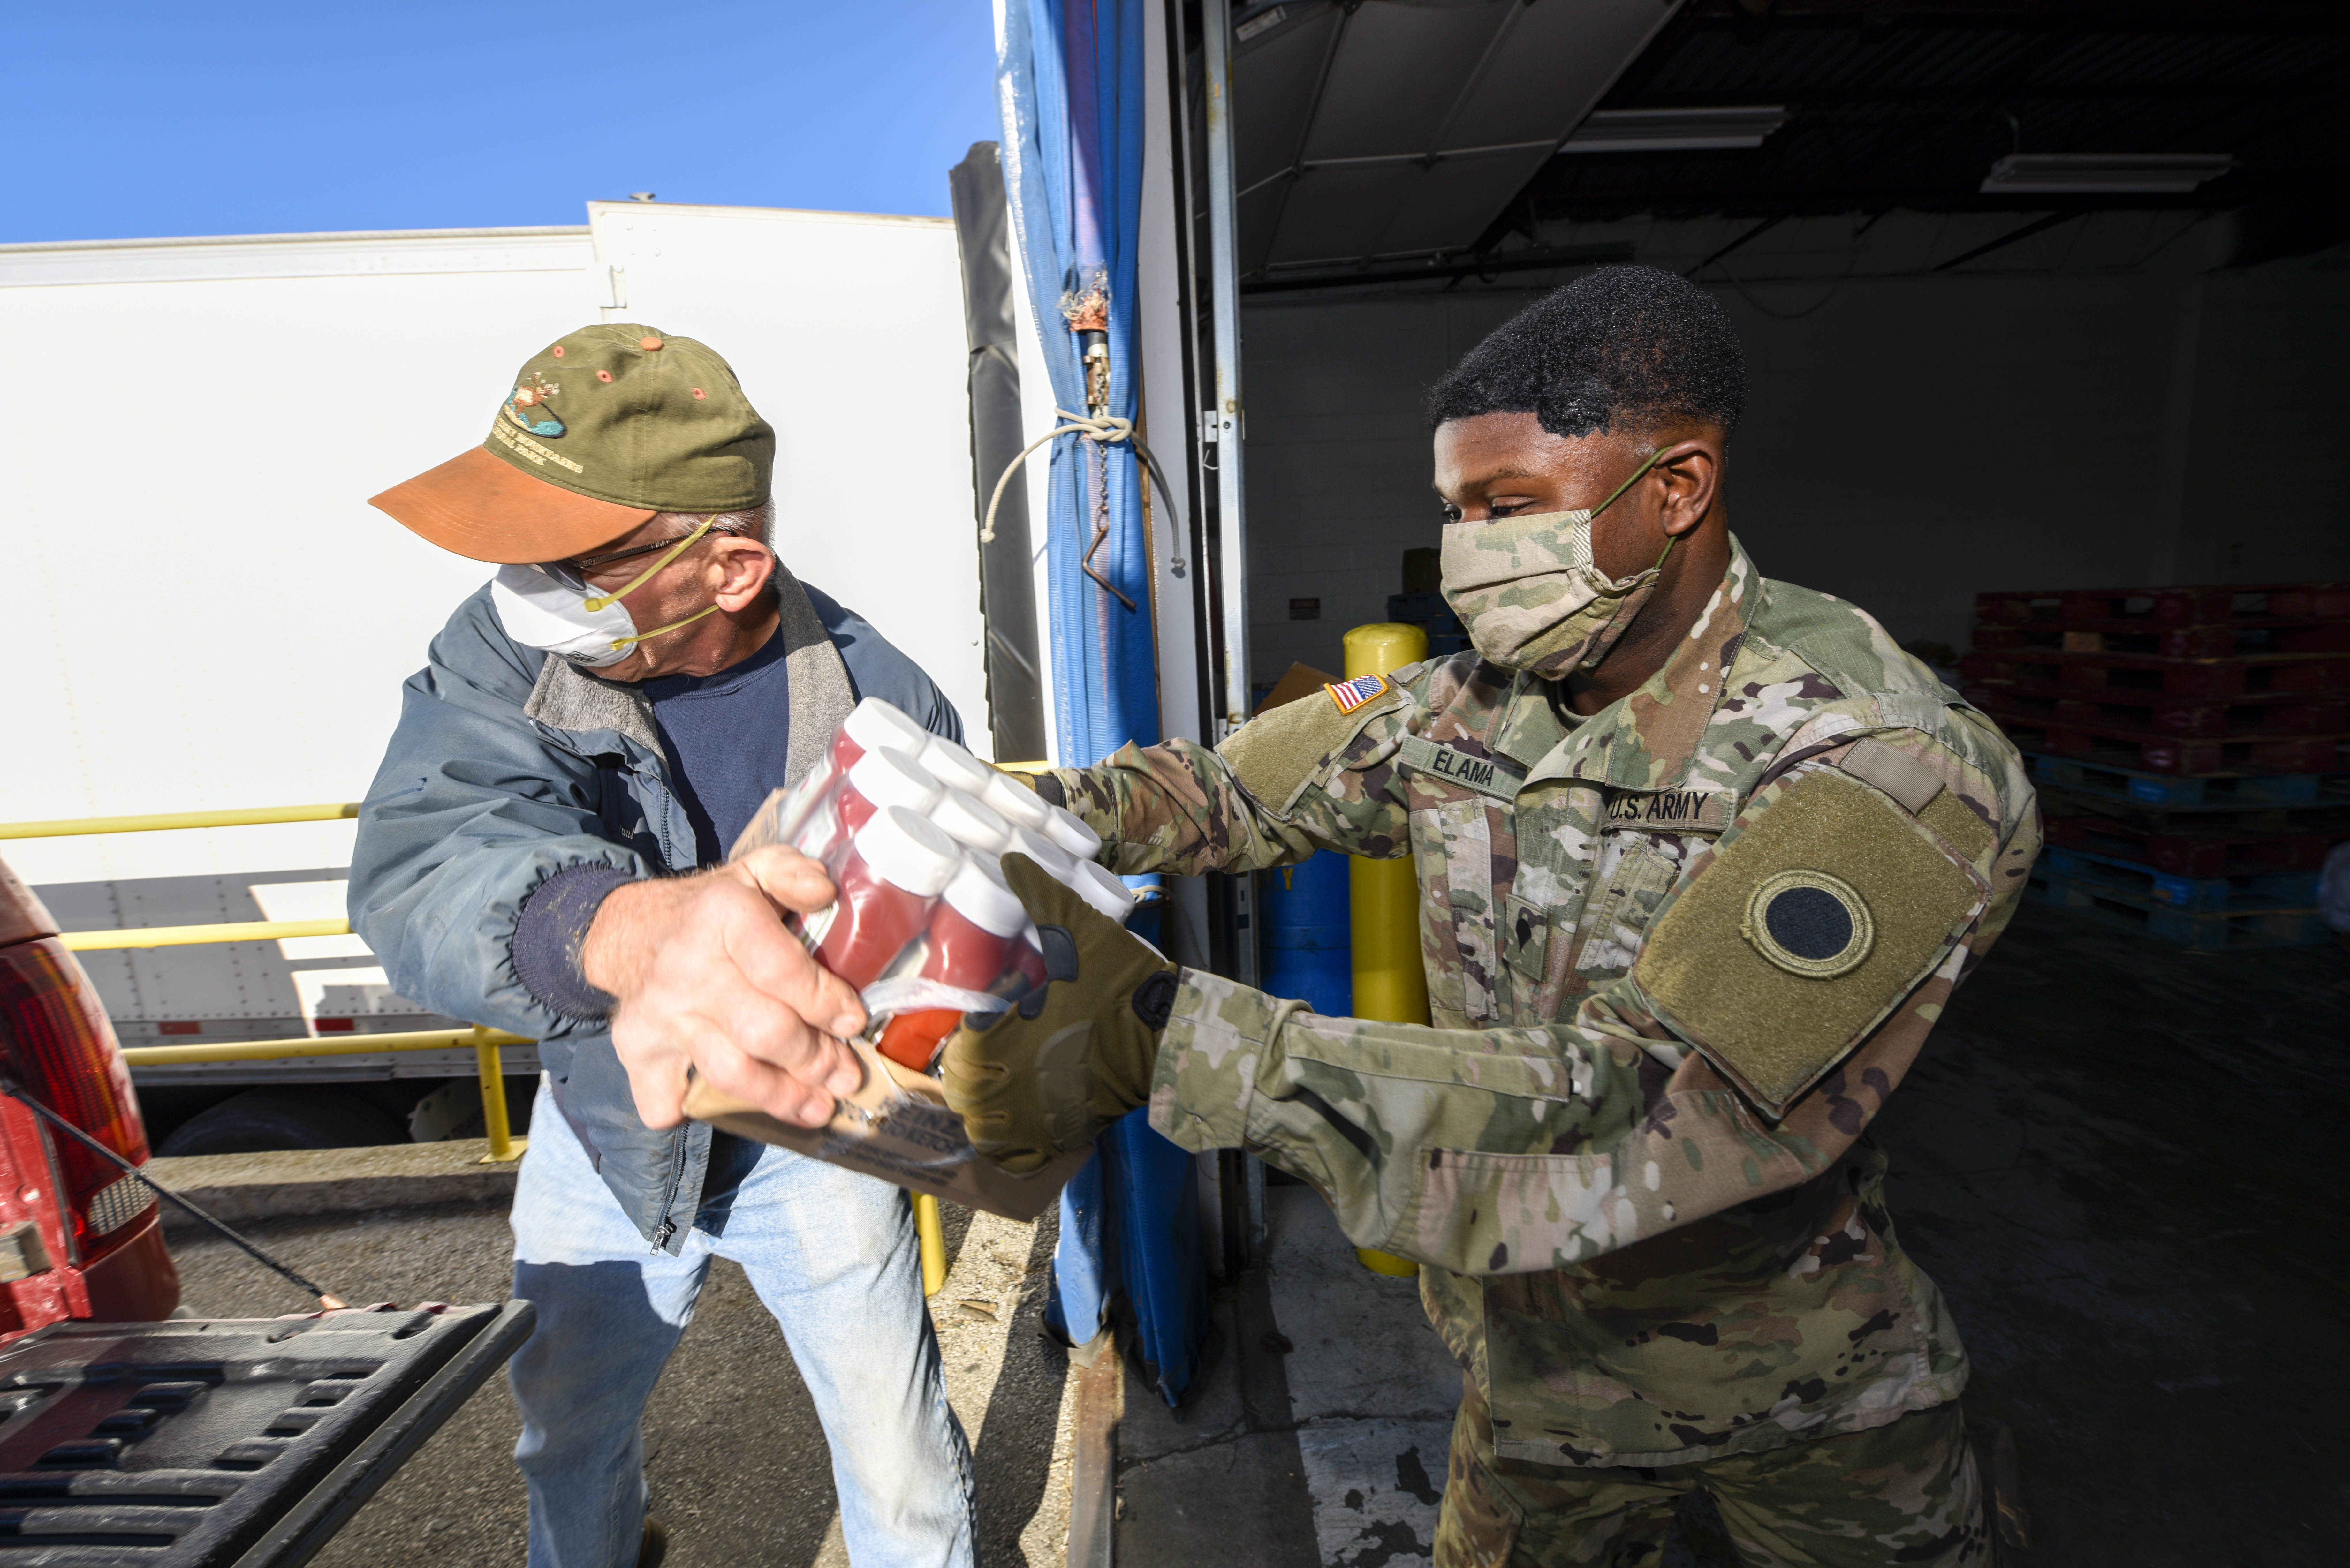 Soldier hands groceries to man to load in back of truck.